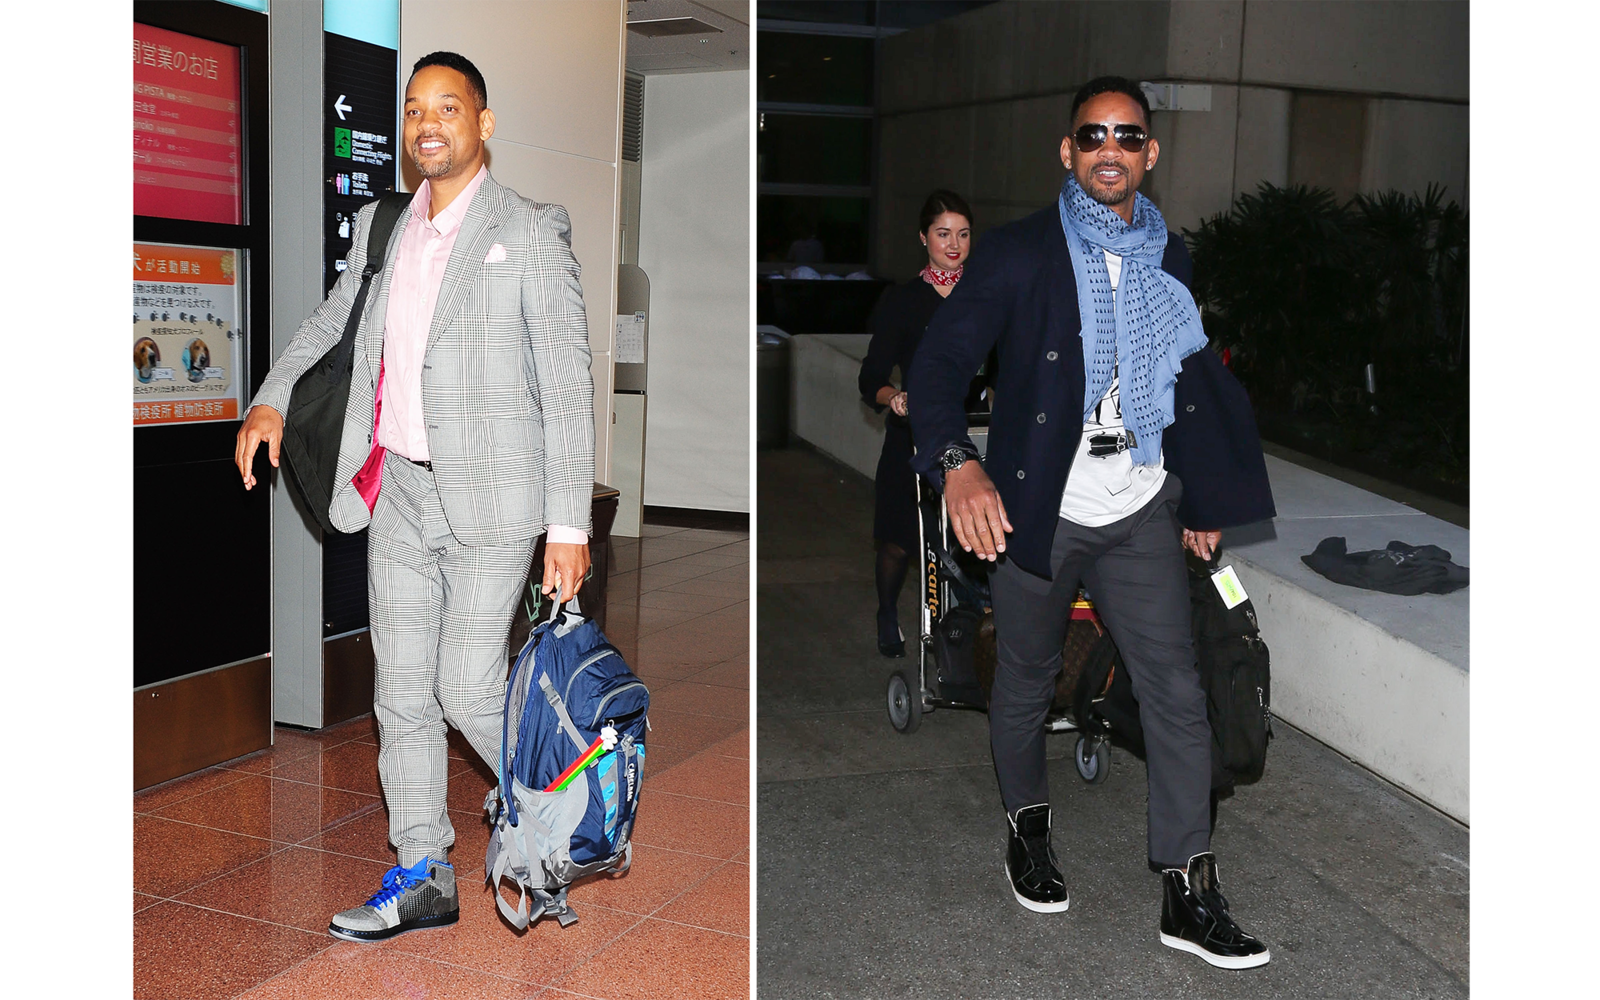 airport style: celebrity do's and don'ts | travel + leisure